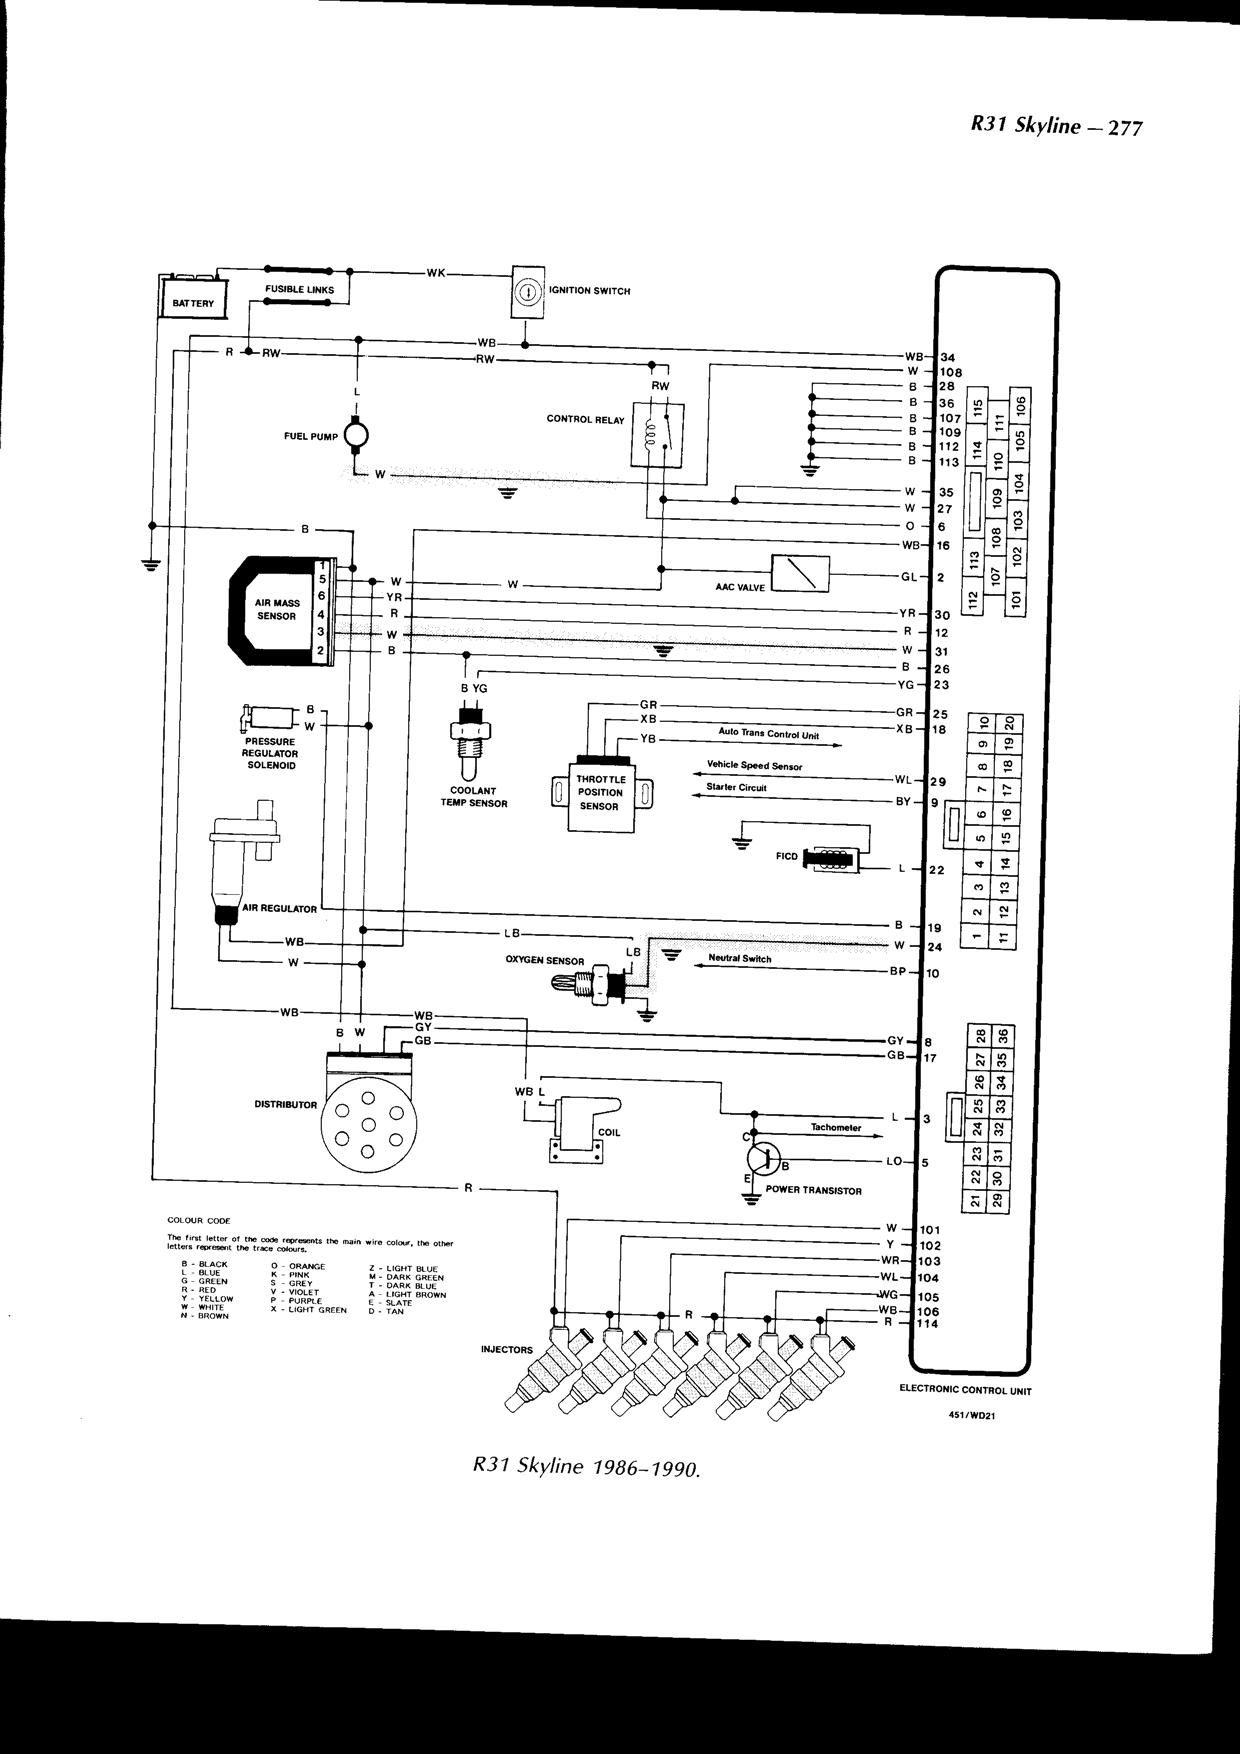 r33 stereo wiring diagram parts of a horse nissan 1400 electrical pinterest